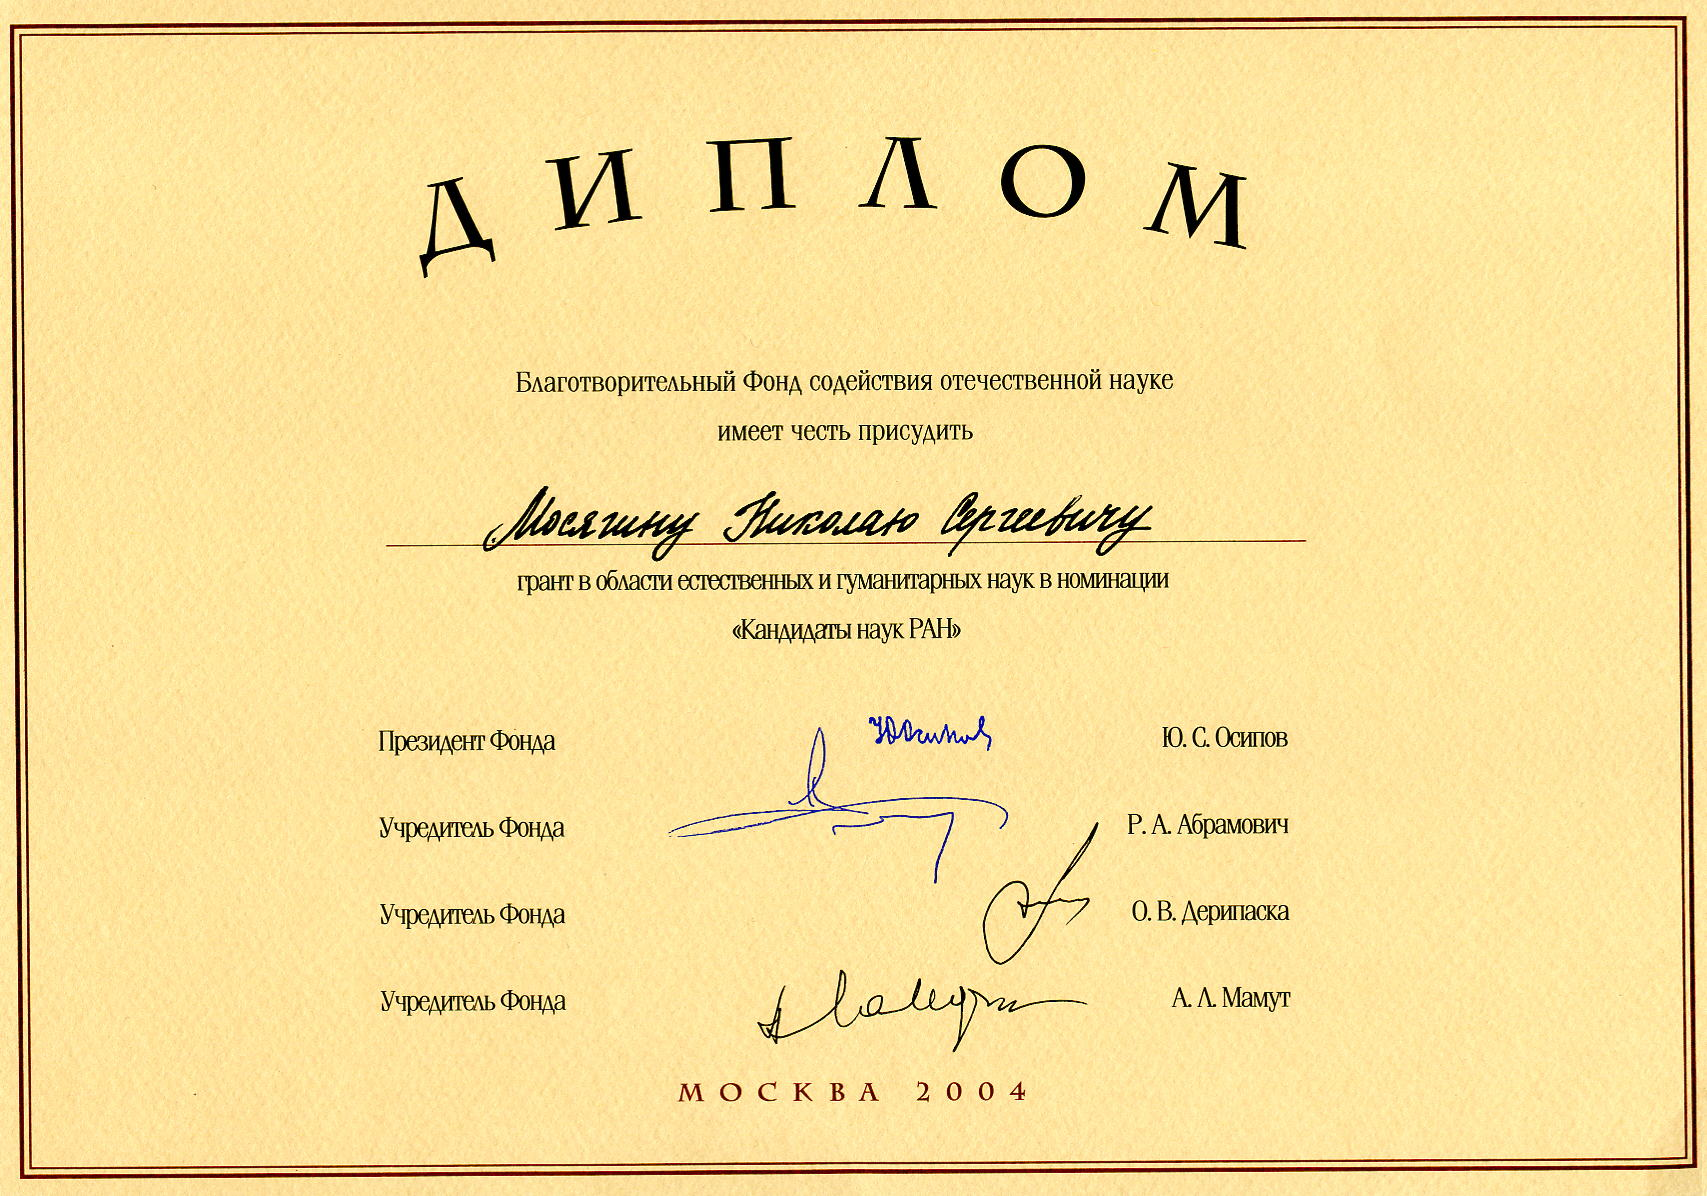 Diploma of Russian Science Support Foundation